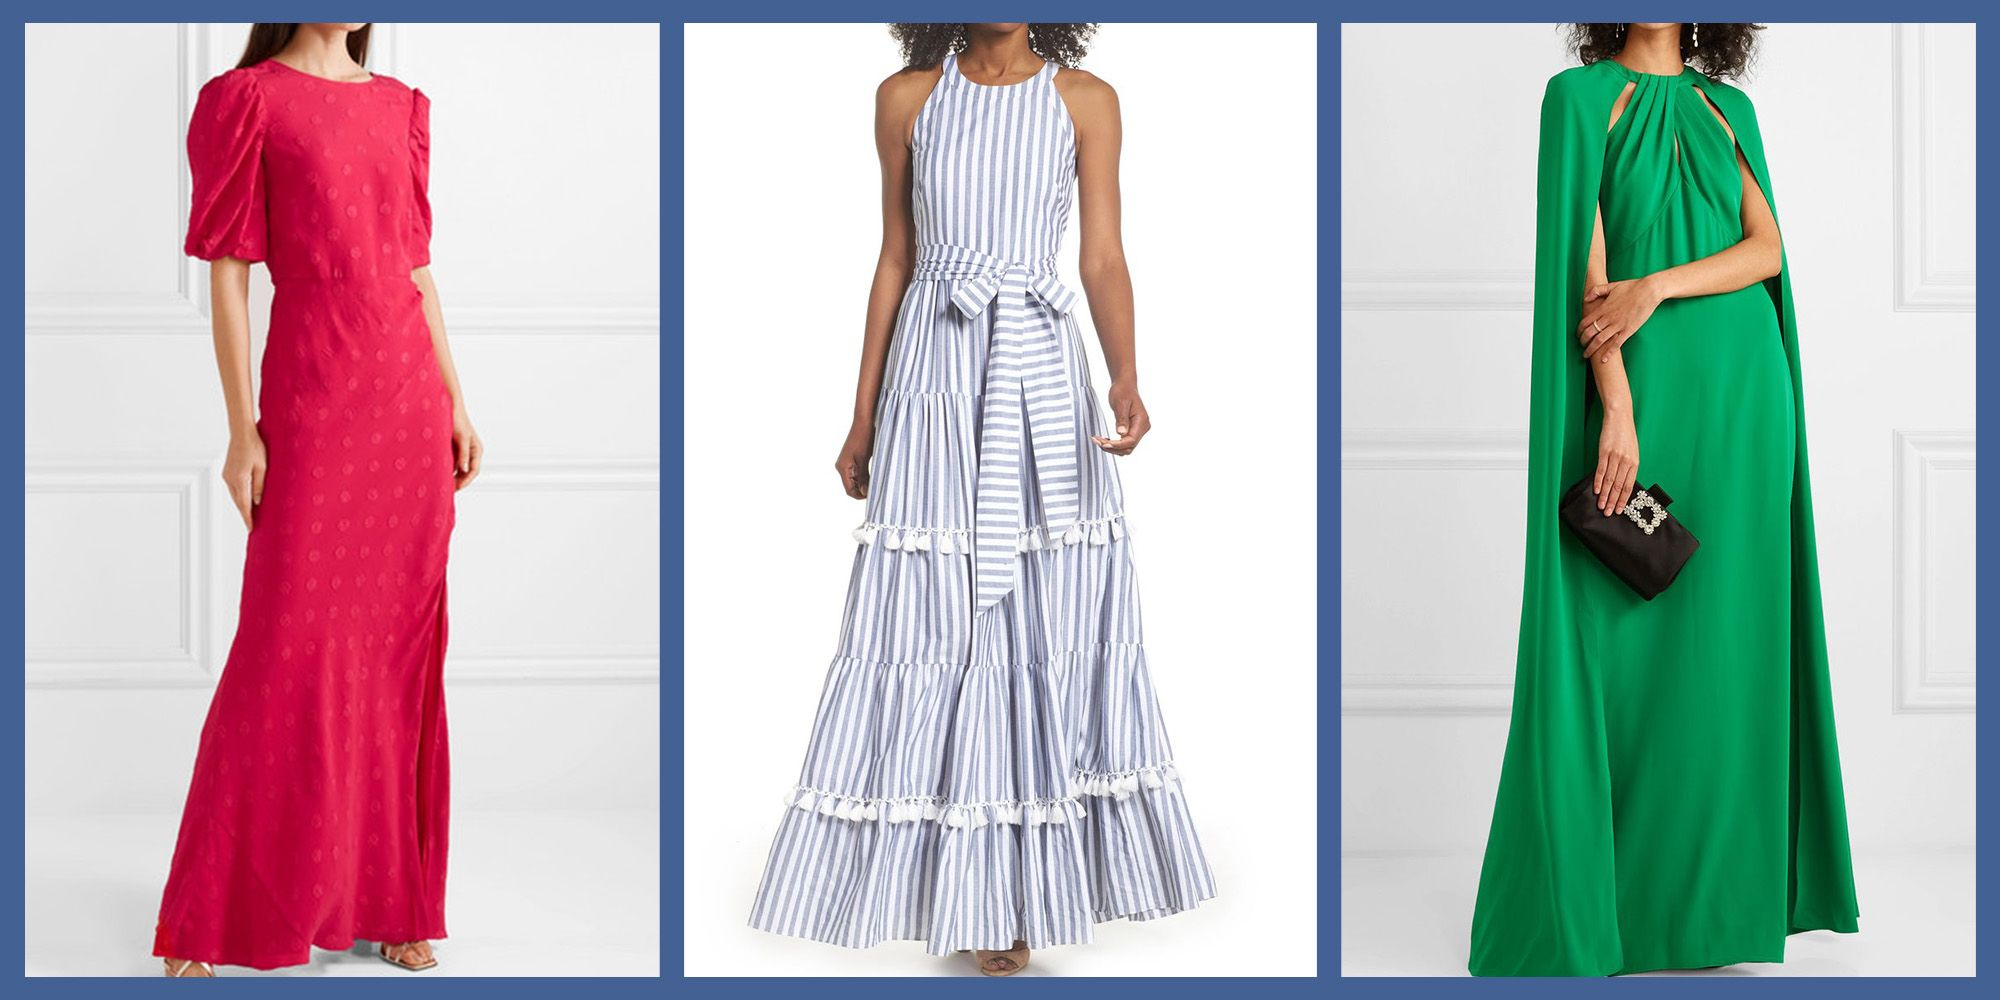 7adb2f092f5b9 What to Wear to a Summer 2019 Wedding - 15 Stylish Summer Wedding Guest  Dresses